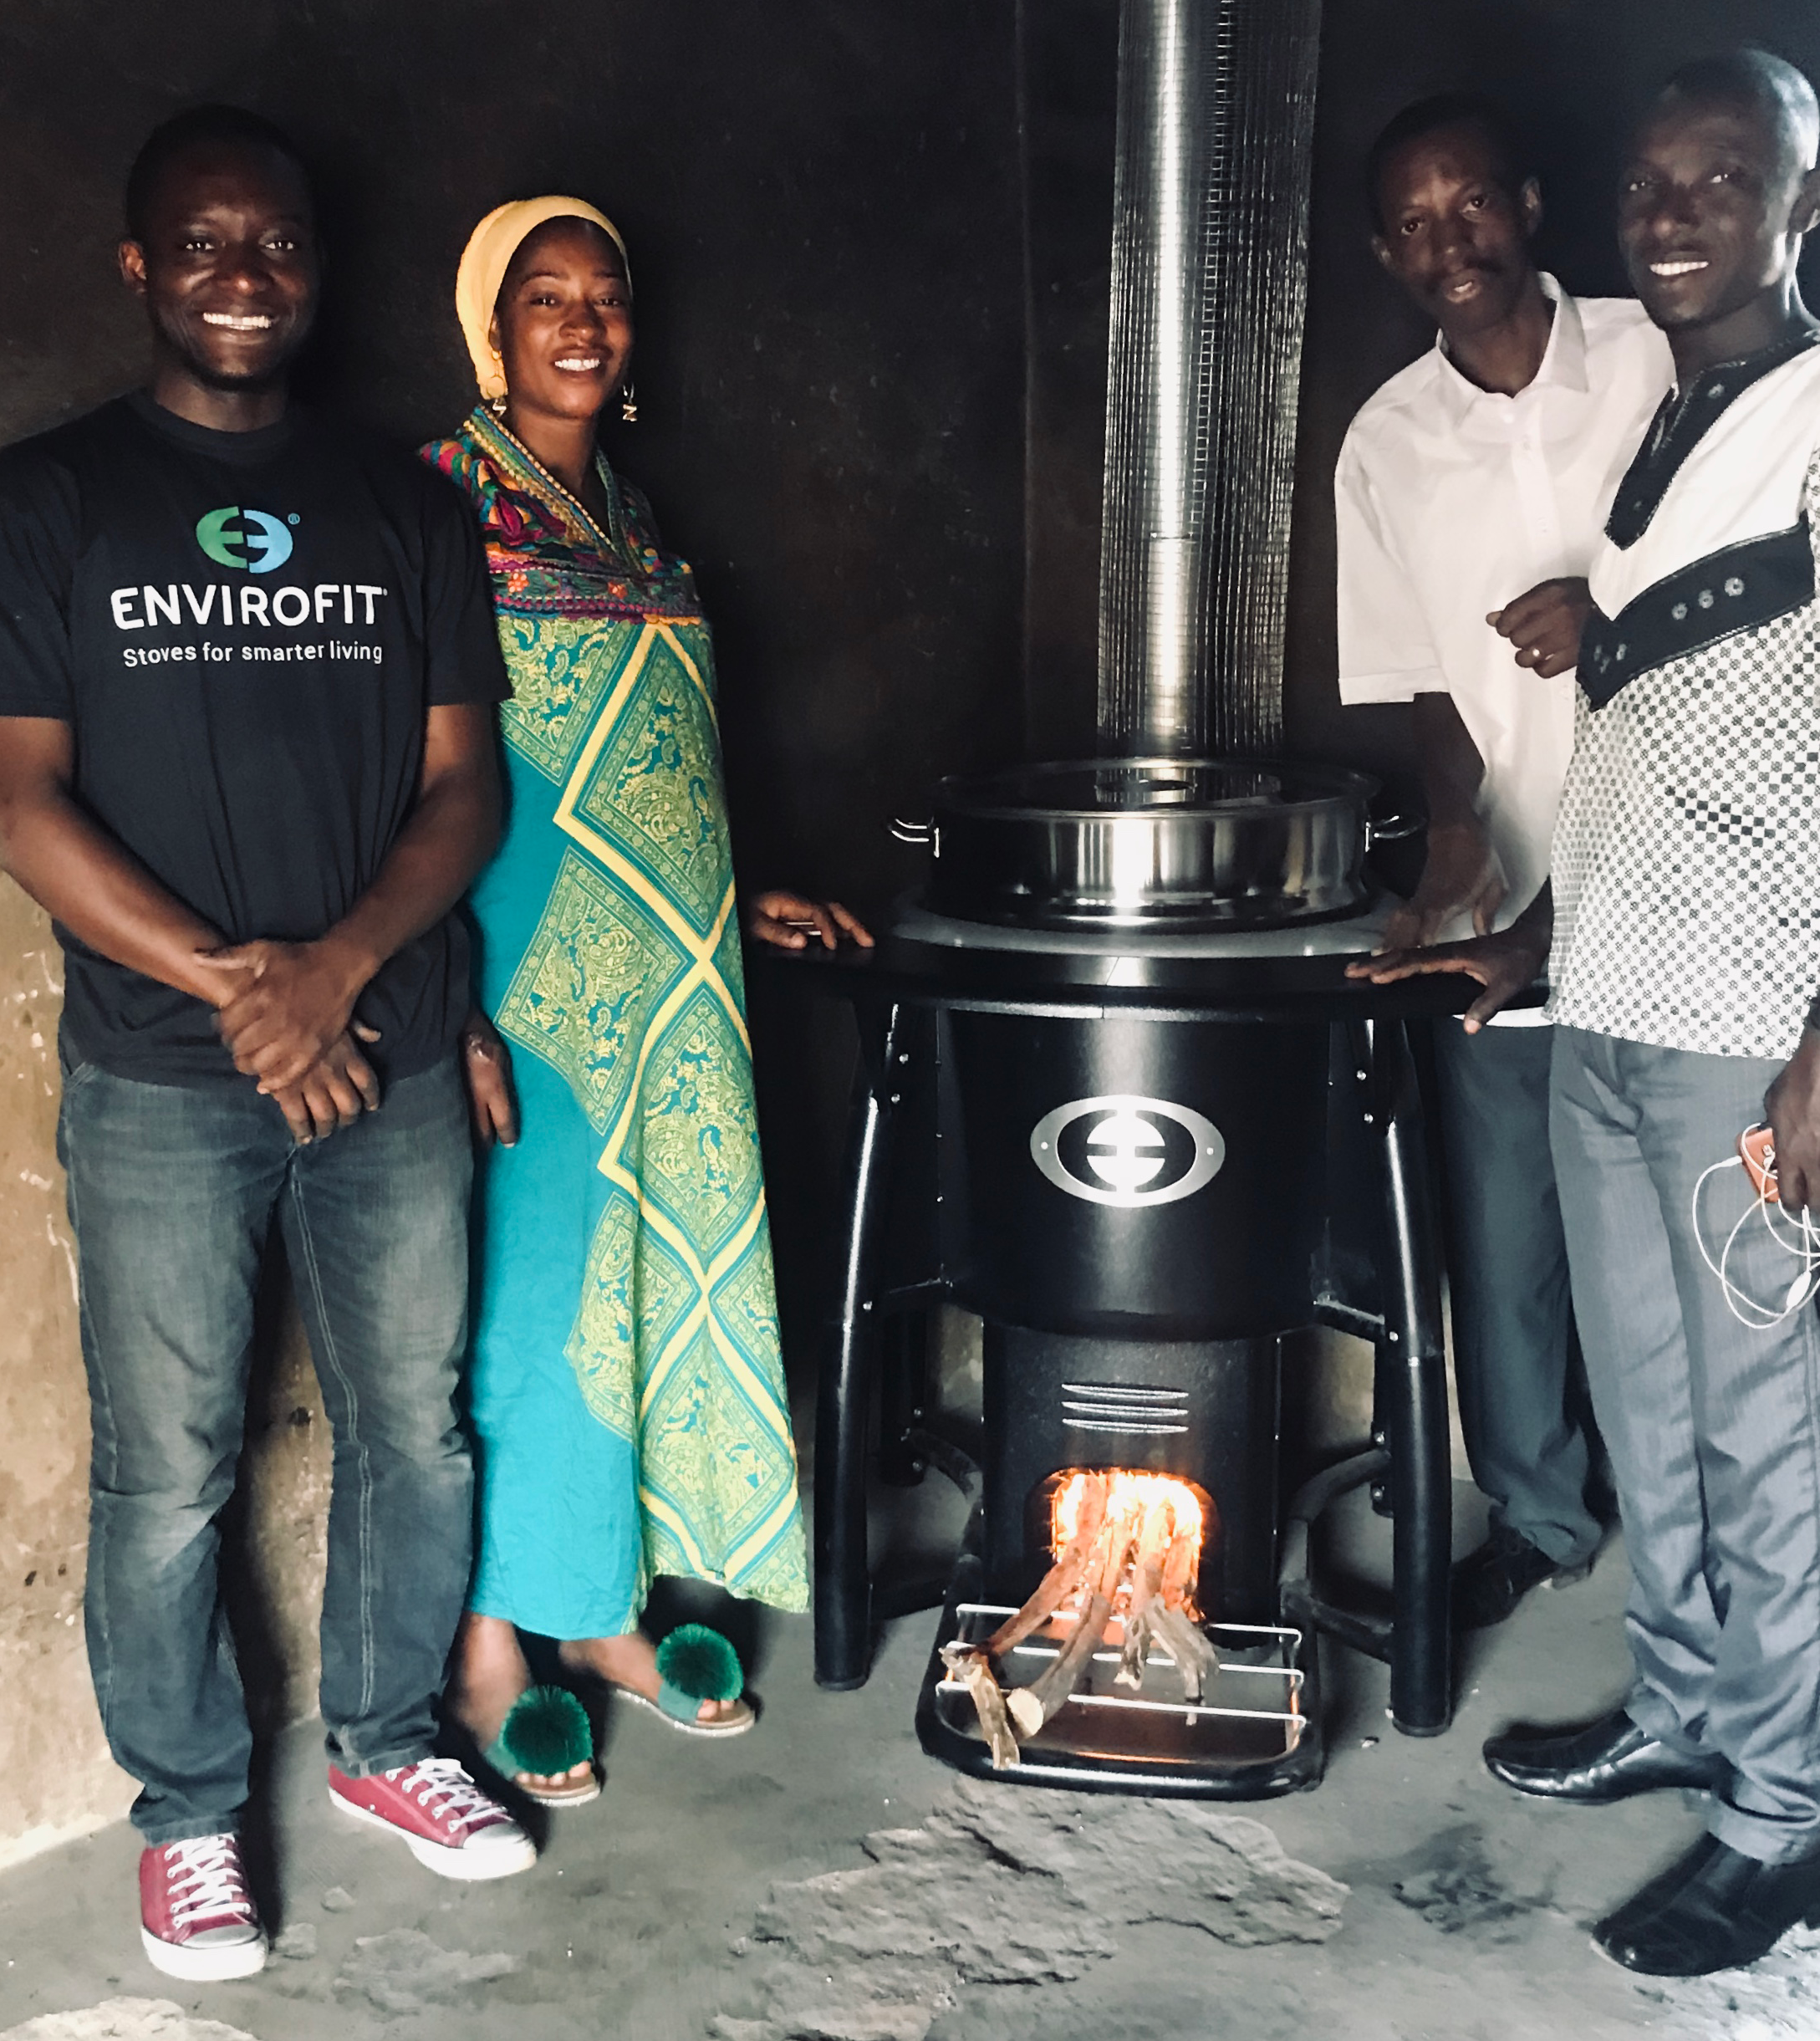 Retrofitting School Kitchens in Ghana - Envirofit